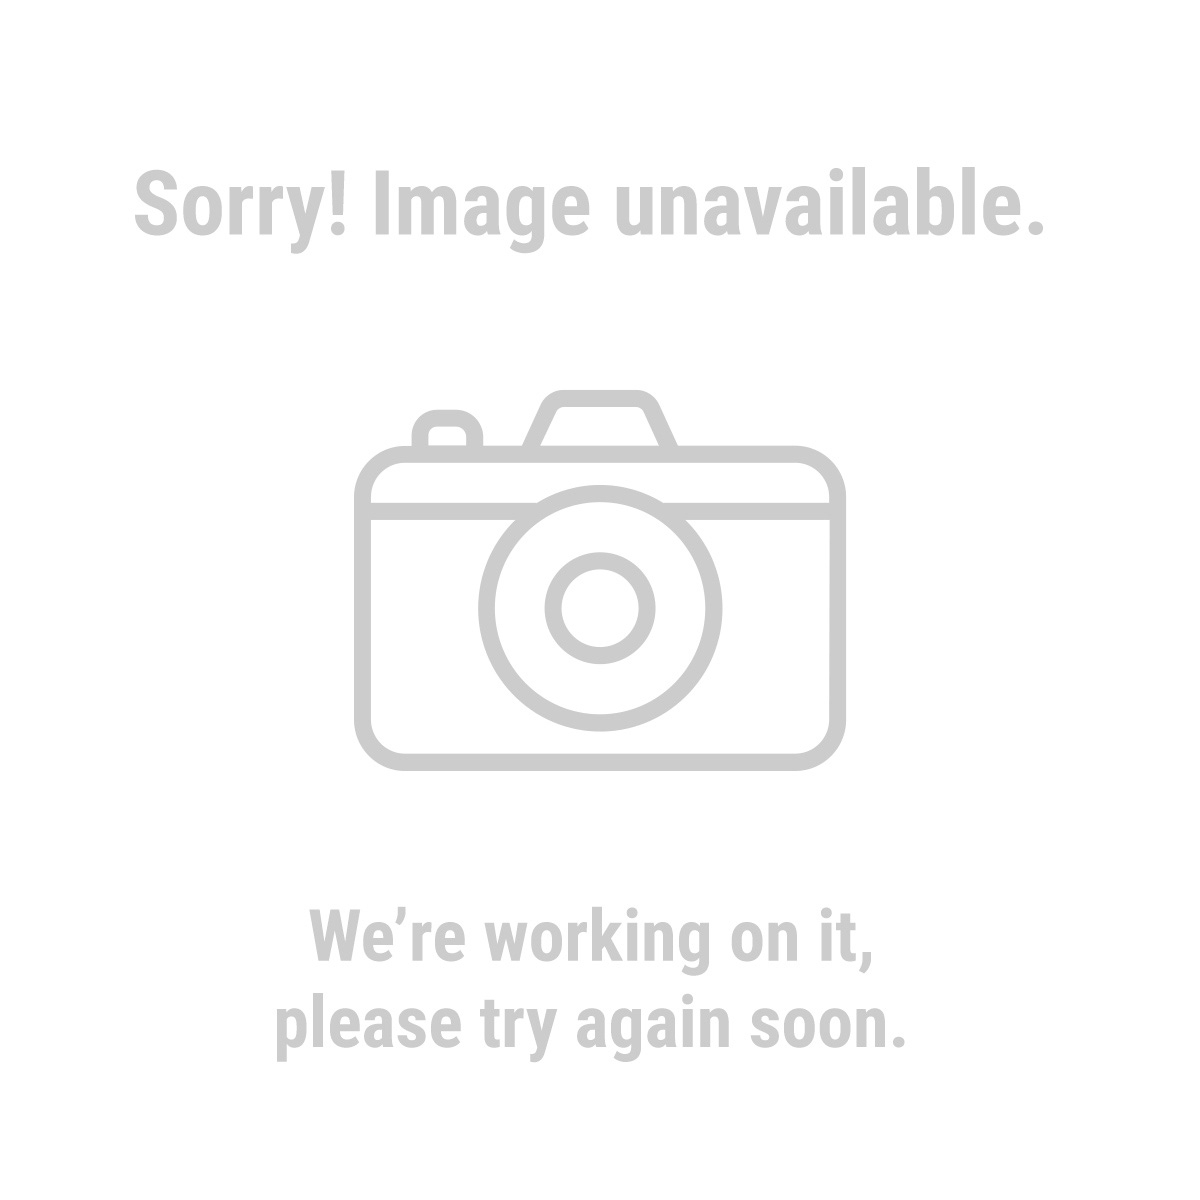 Pittsburgh® 93668 15 Piece Metric Service Wrench Set